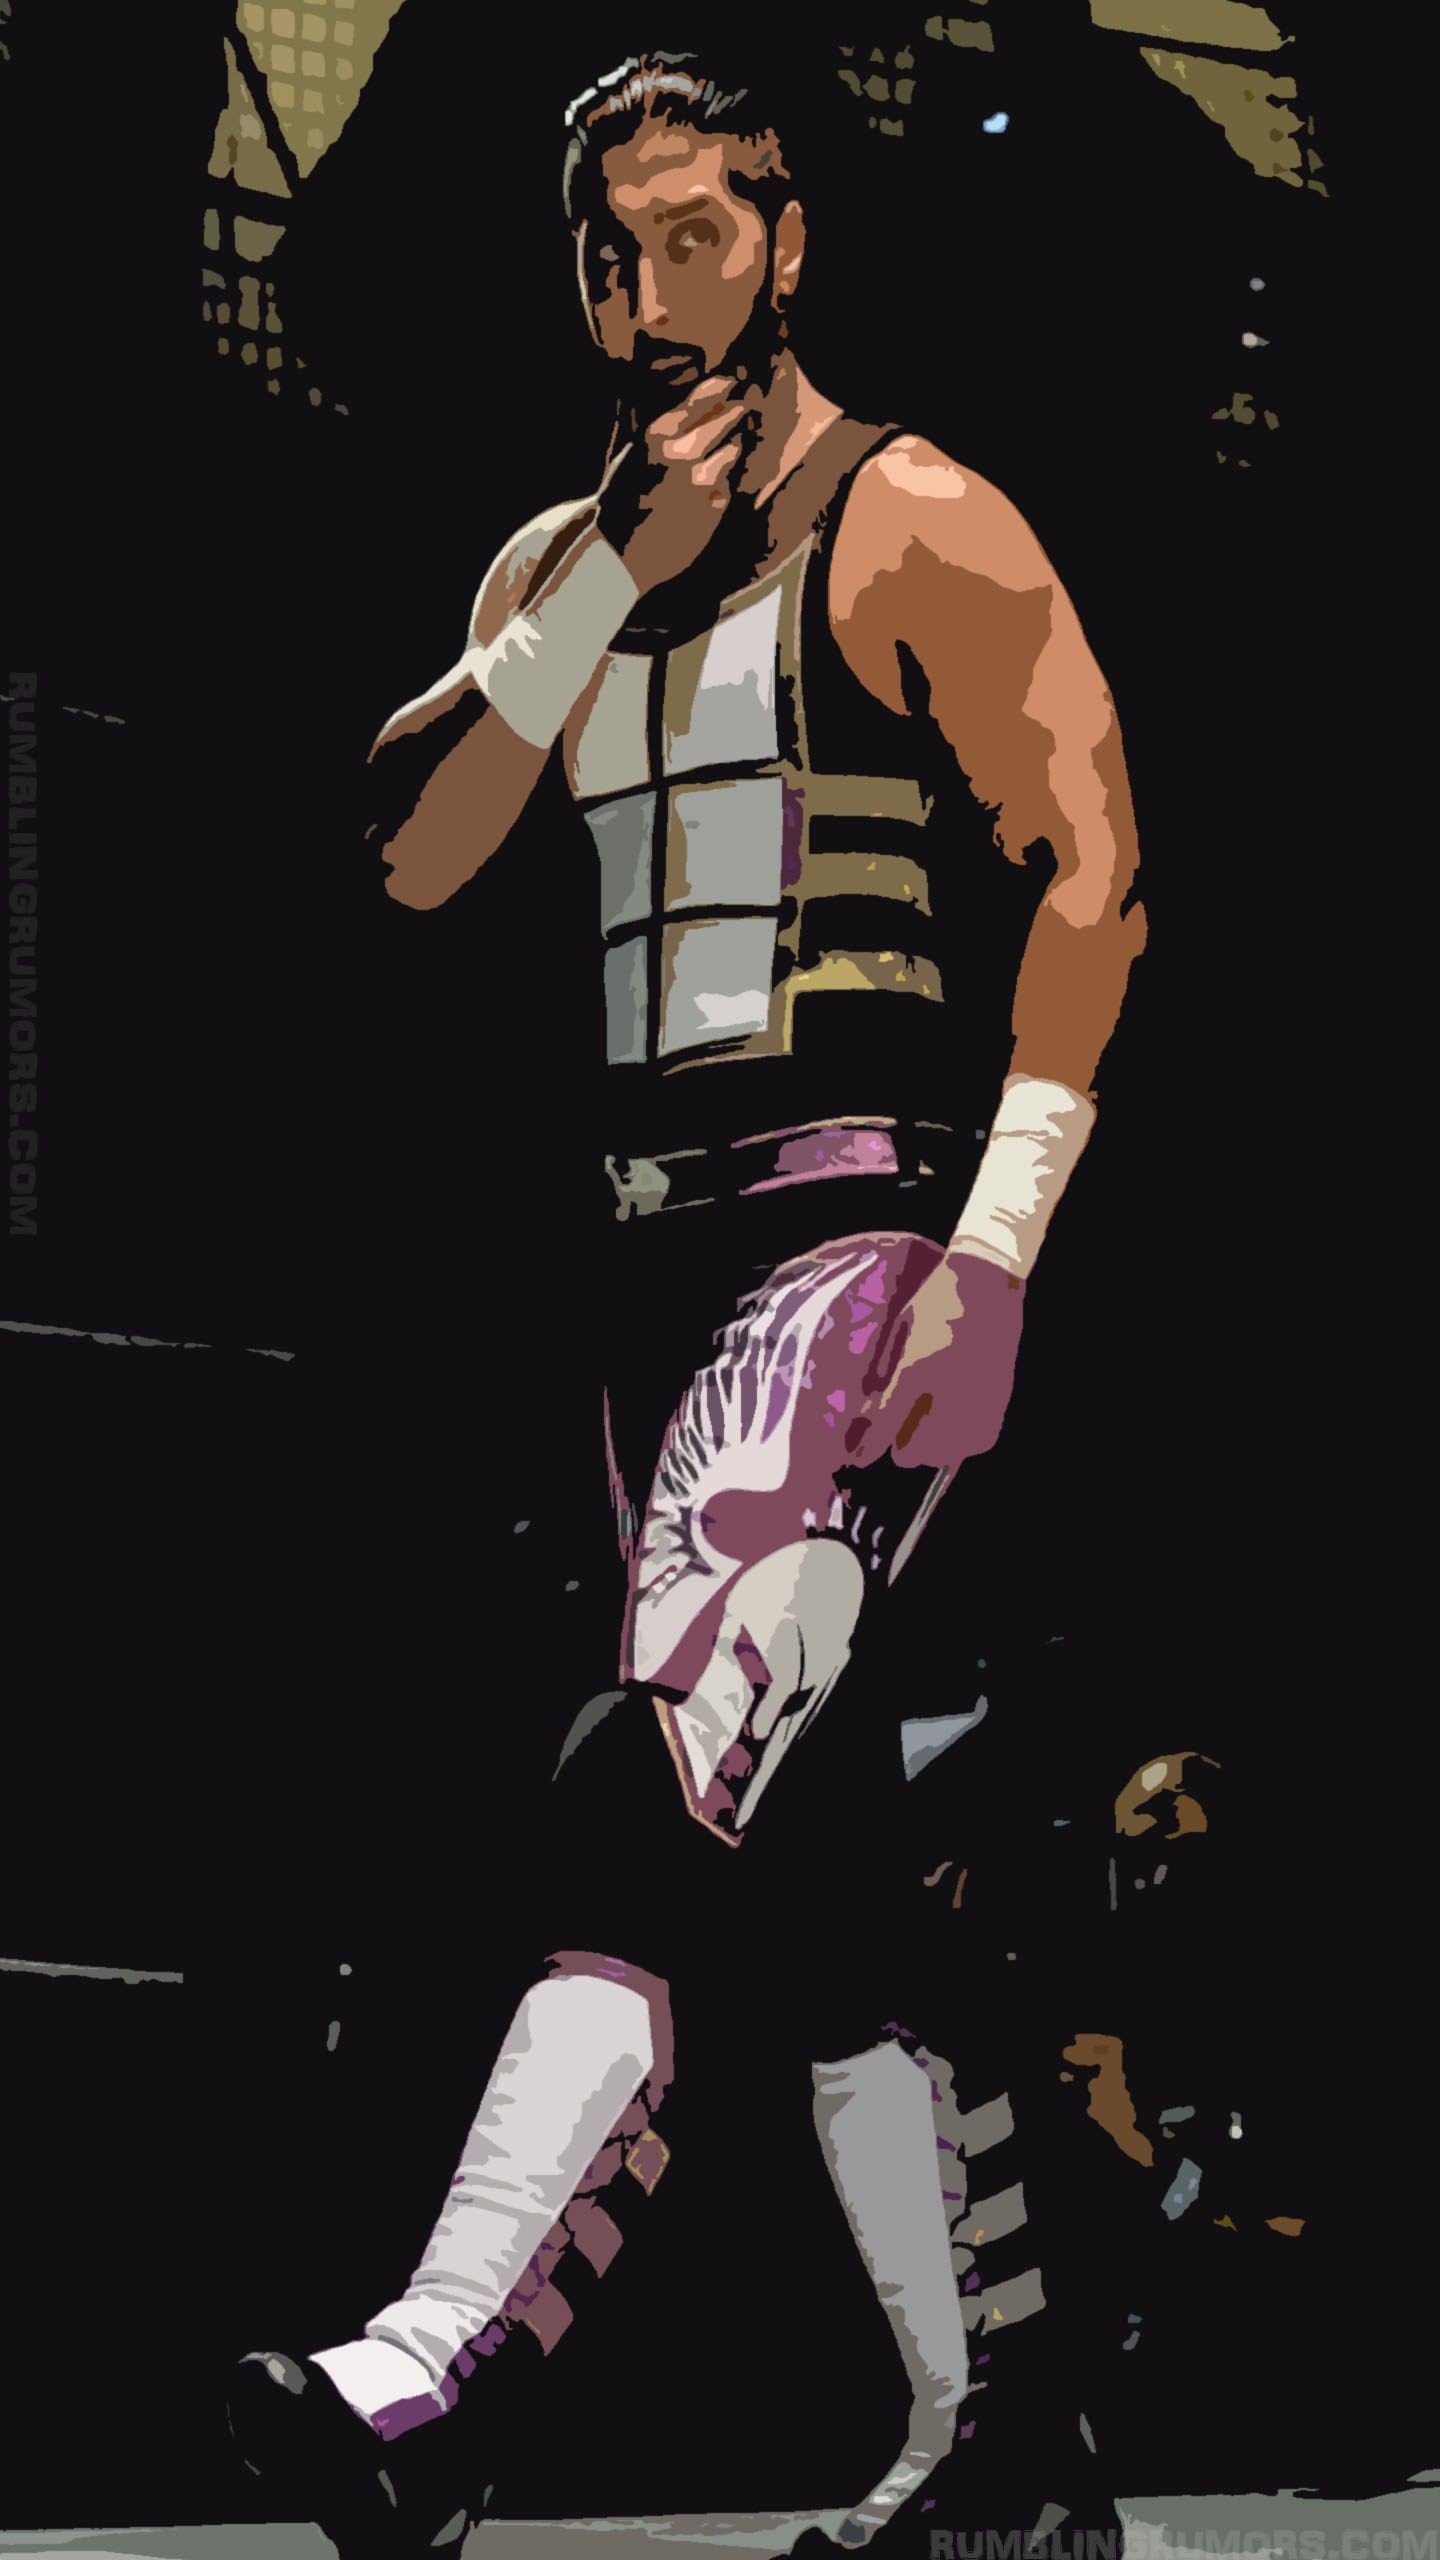 Mustafa Ali Hd Wallpapers Wwe Pictures News Original Content